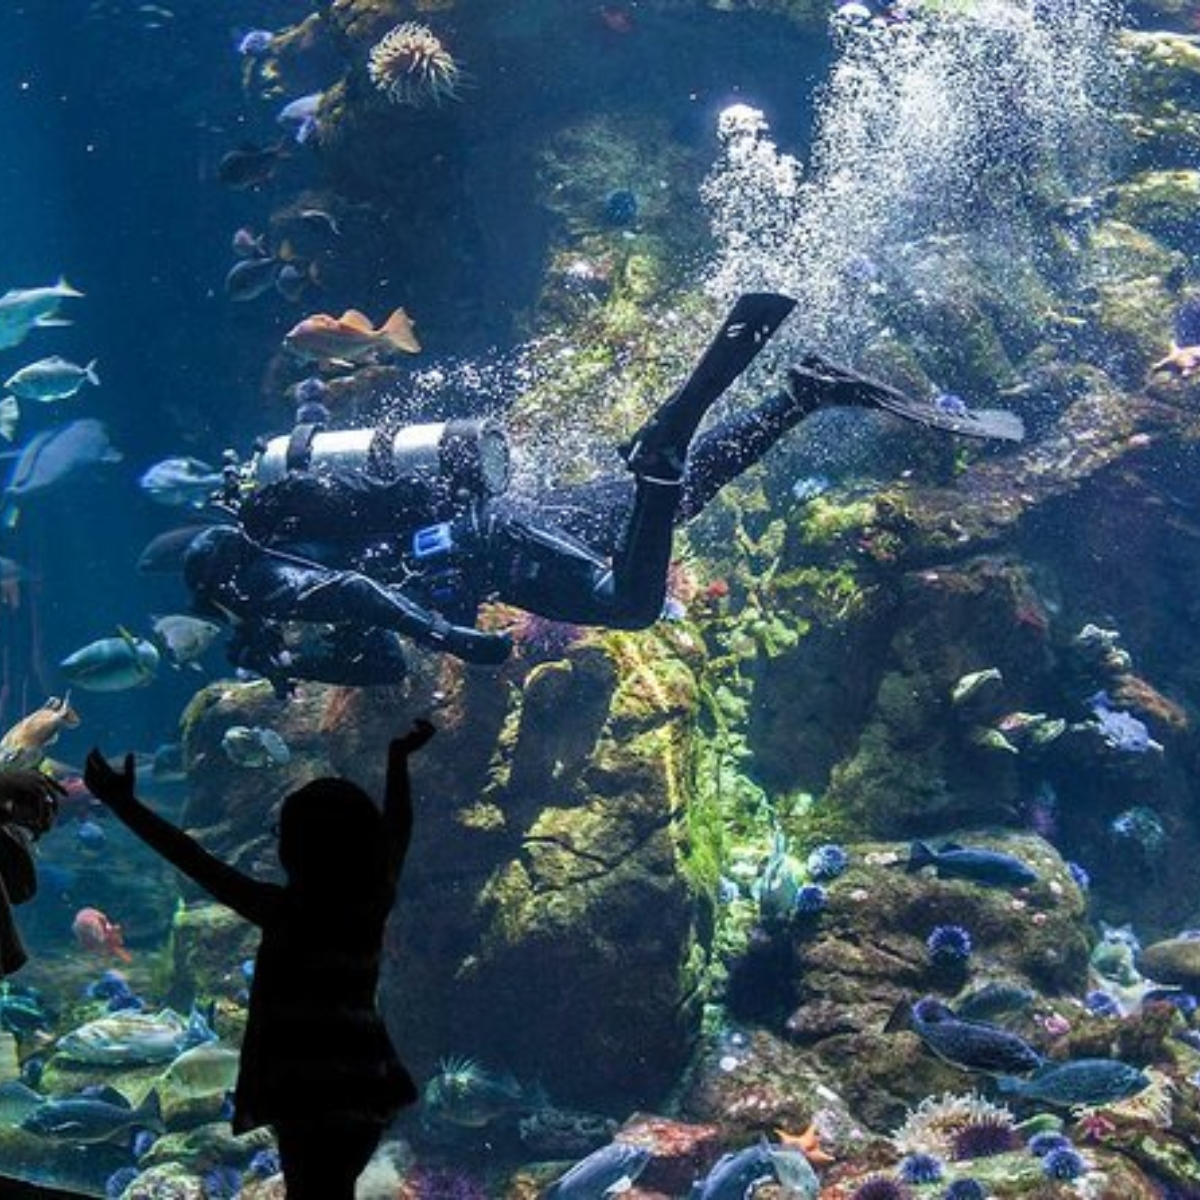 Skip the Line: California Academy of Sciences General Admission Ticket Images